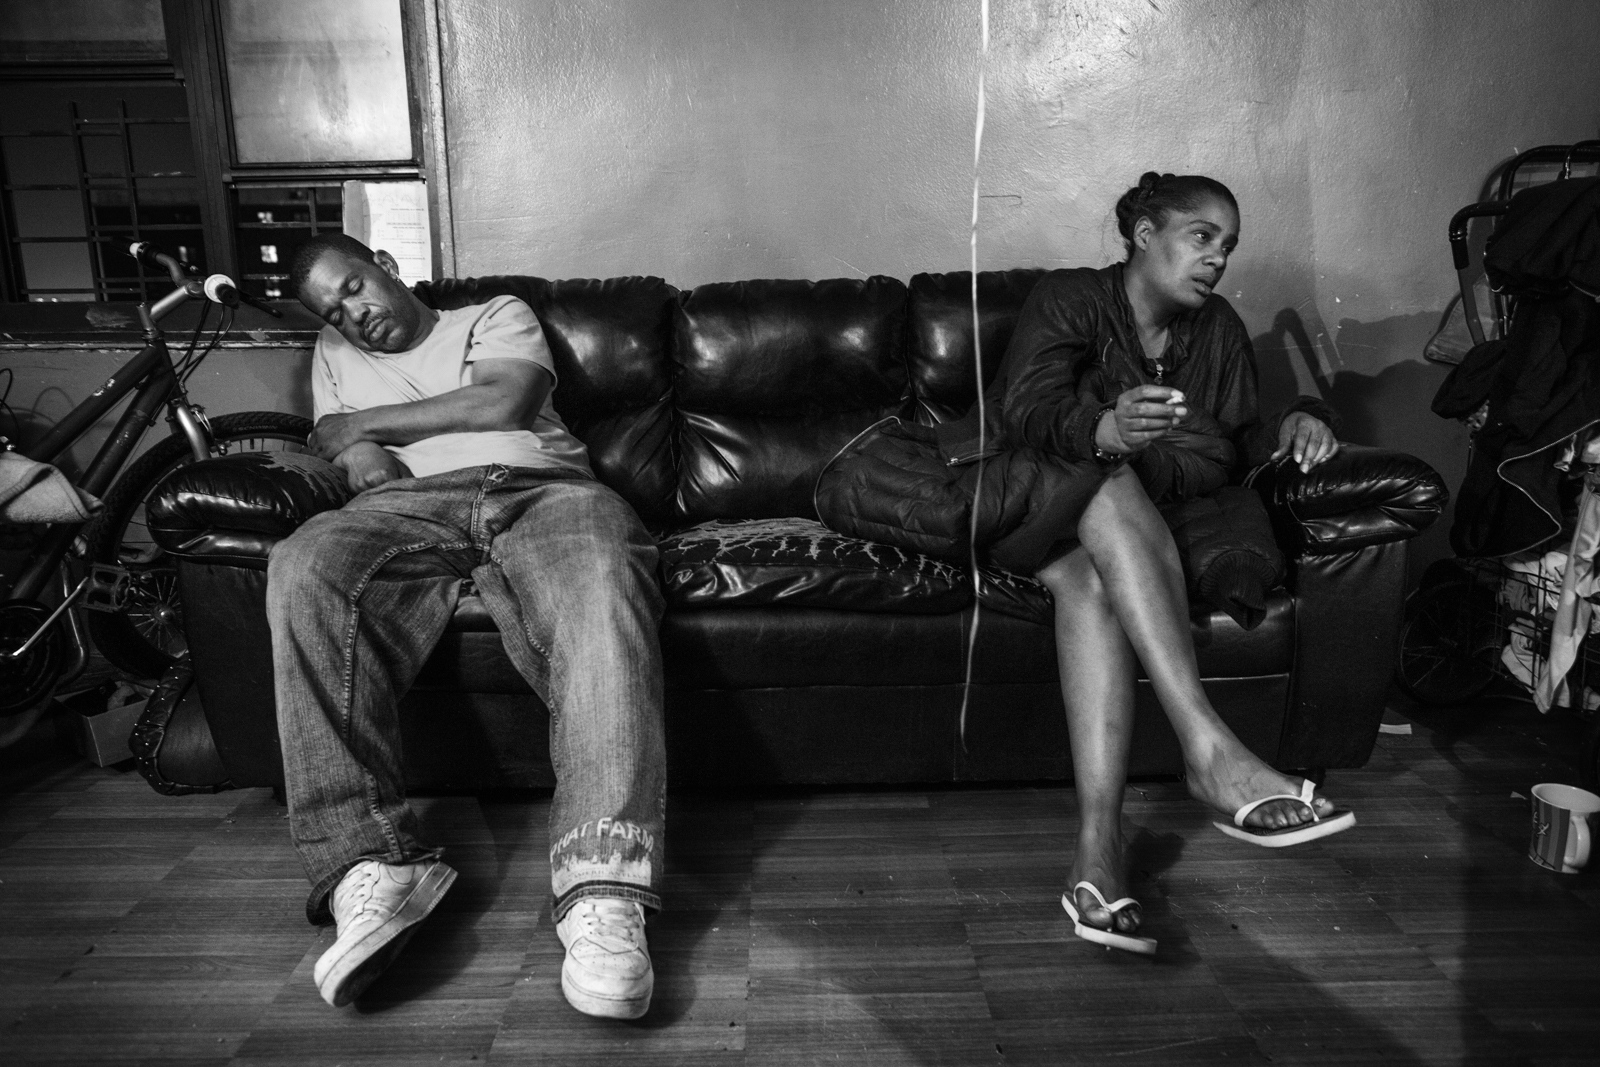 Relatives of Smokey on a couch after a birthday party celebration inside his apartment, the family environment is one of the main reasons why kids join gangs at an early age, trying to find someone who will support them and understand them.